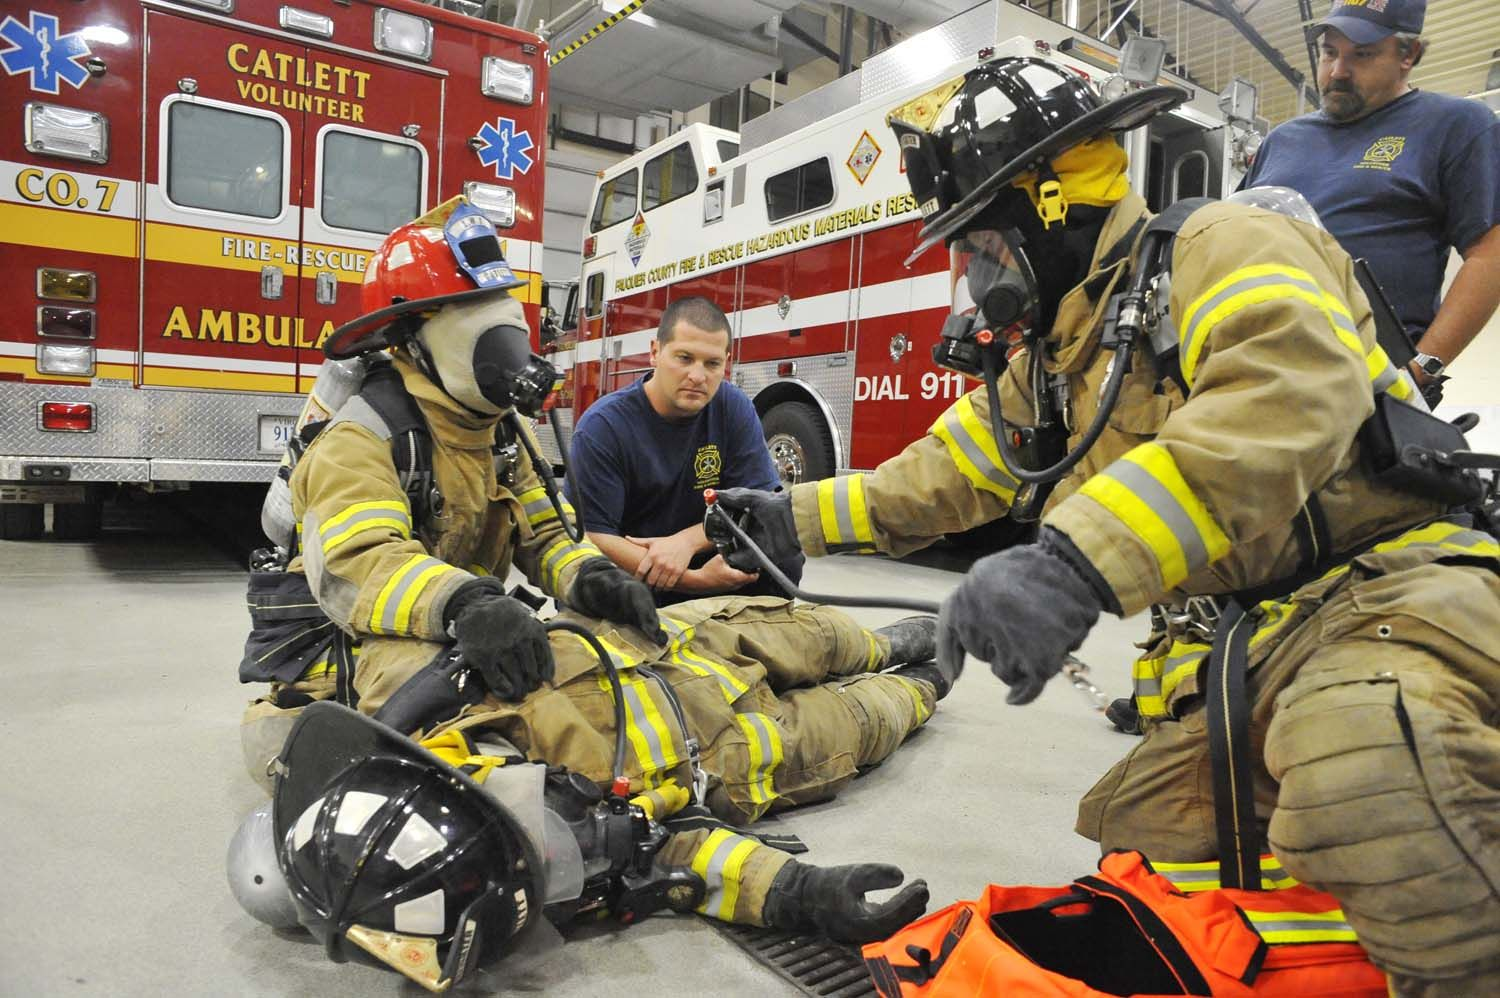 Catlett firefighters offer free CPR classes Cpr classes